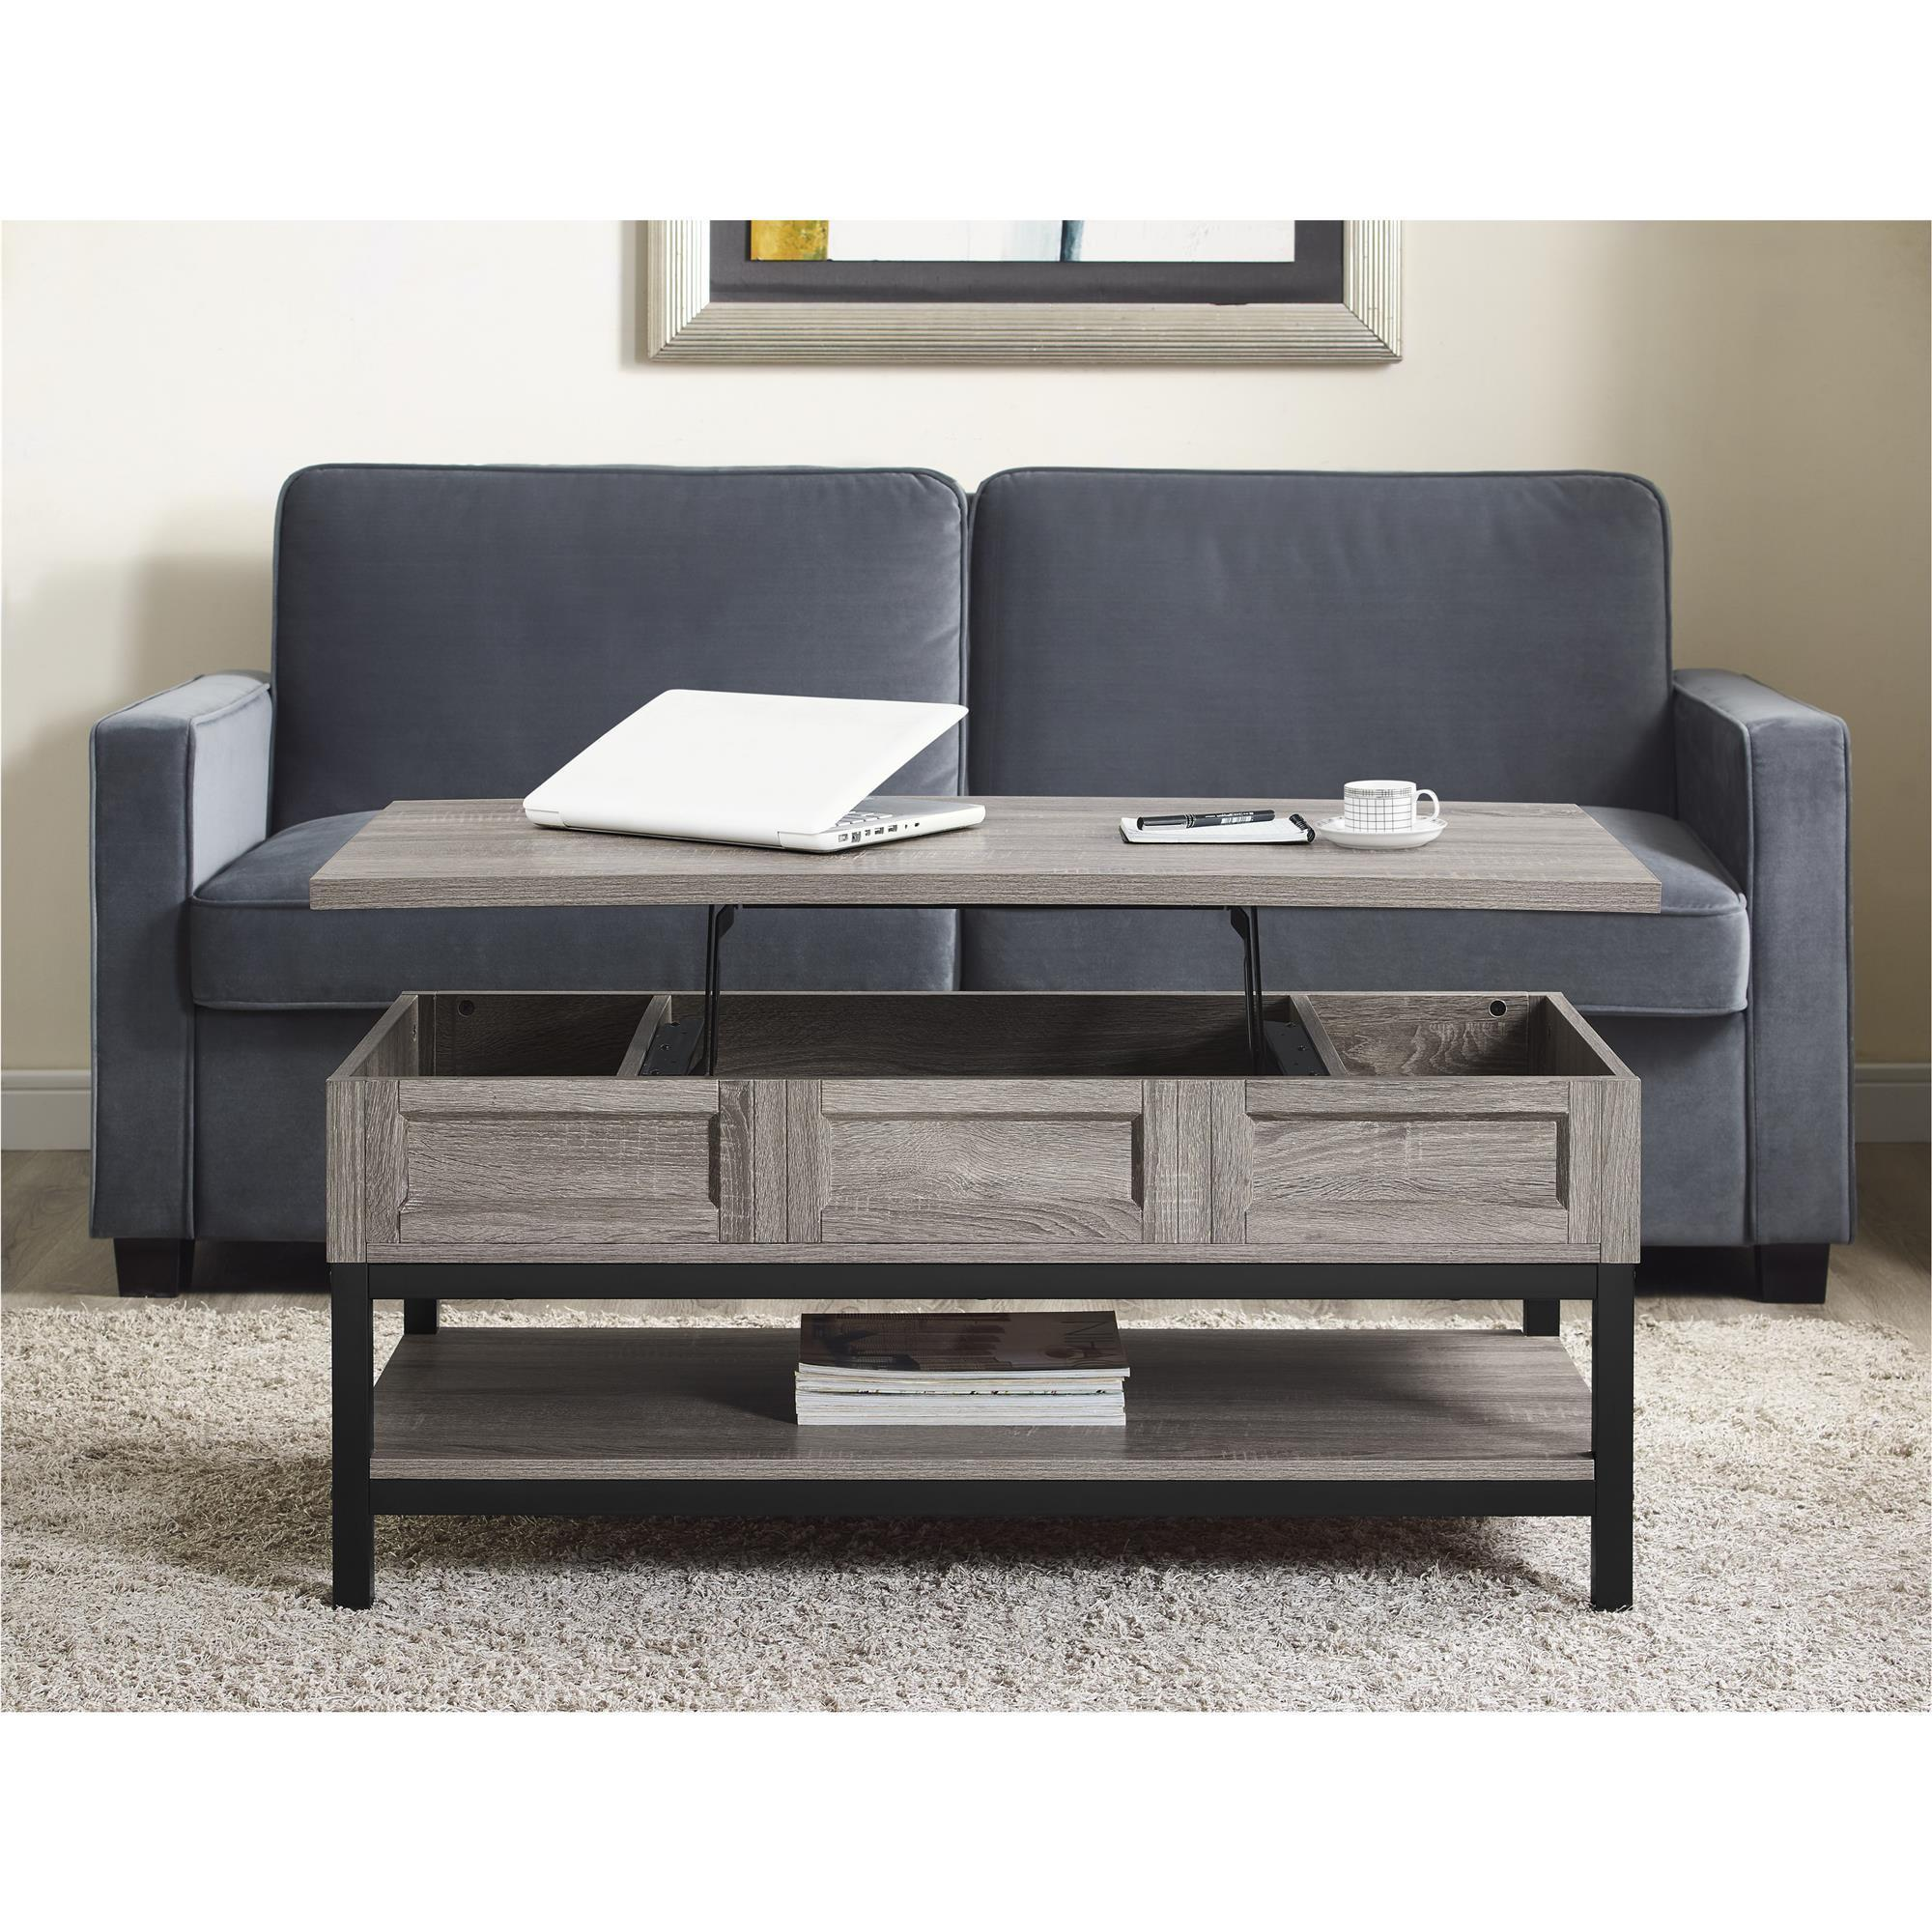 Shop The Gray Barn Latigo Lift Top Sonoma Oak Coffee Table   Free Shipping  Today   Overstock.com   22801595